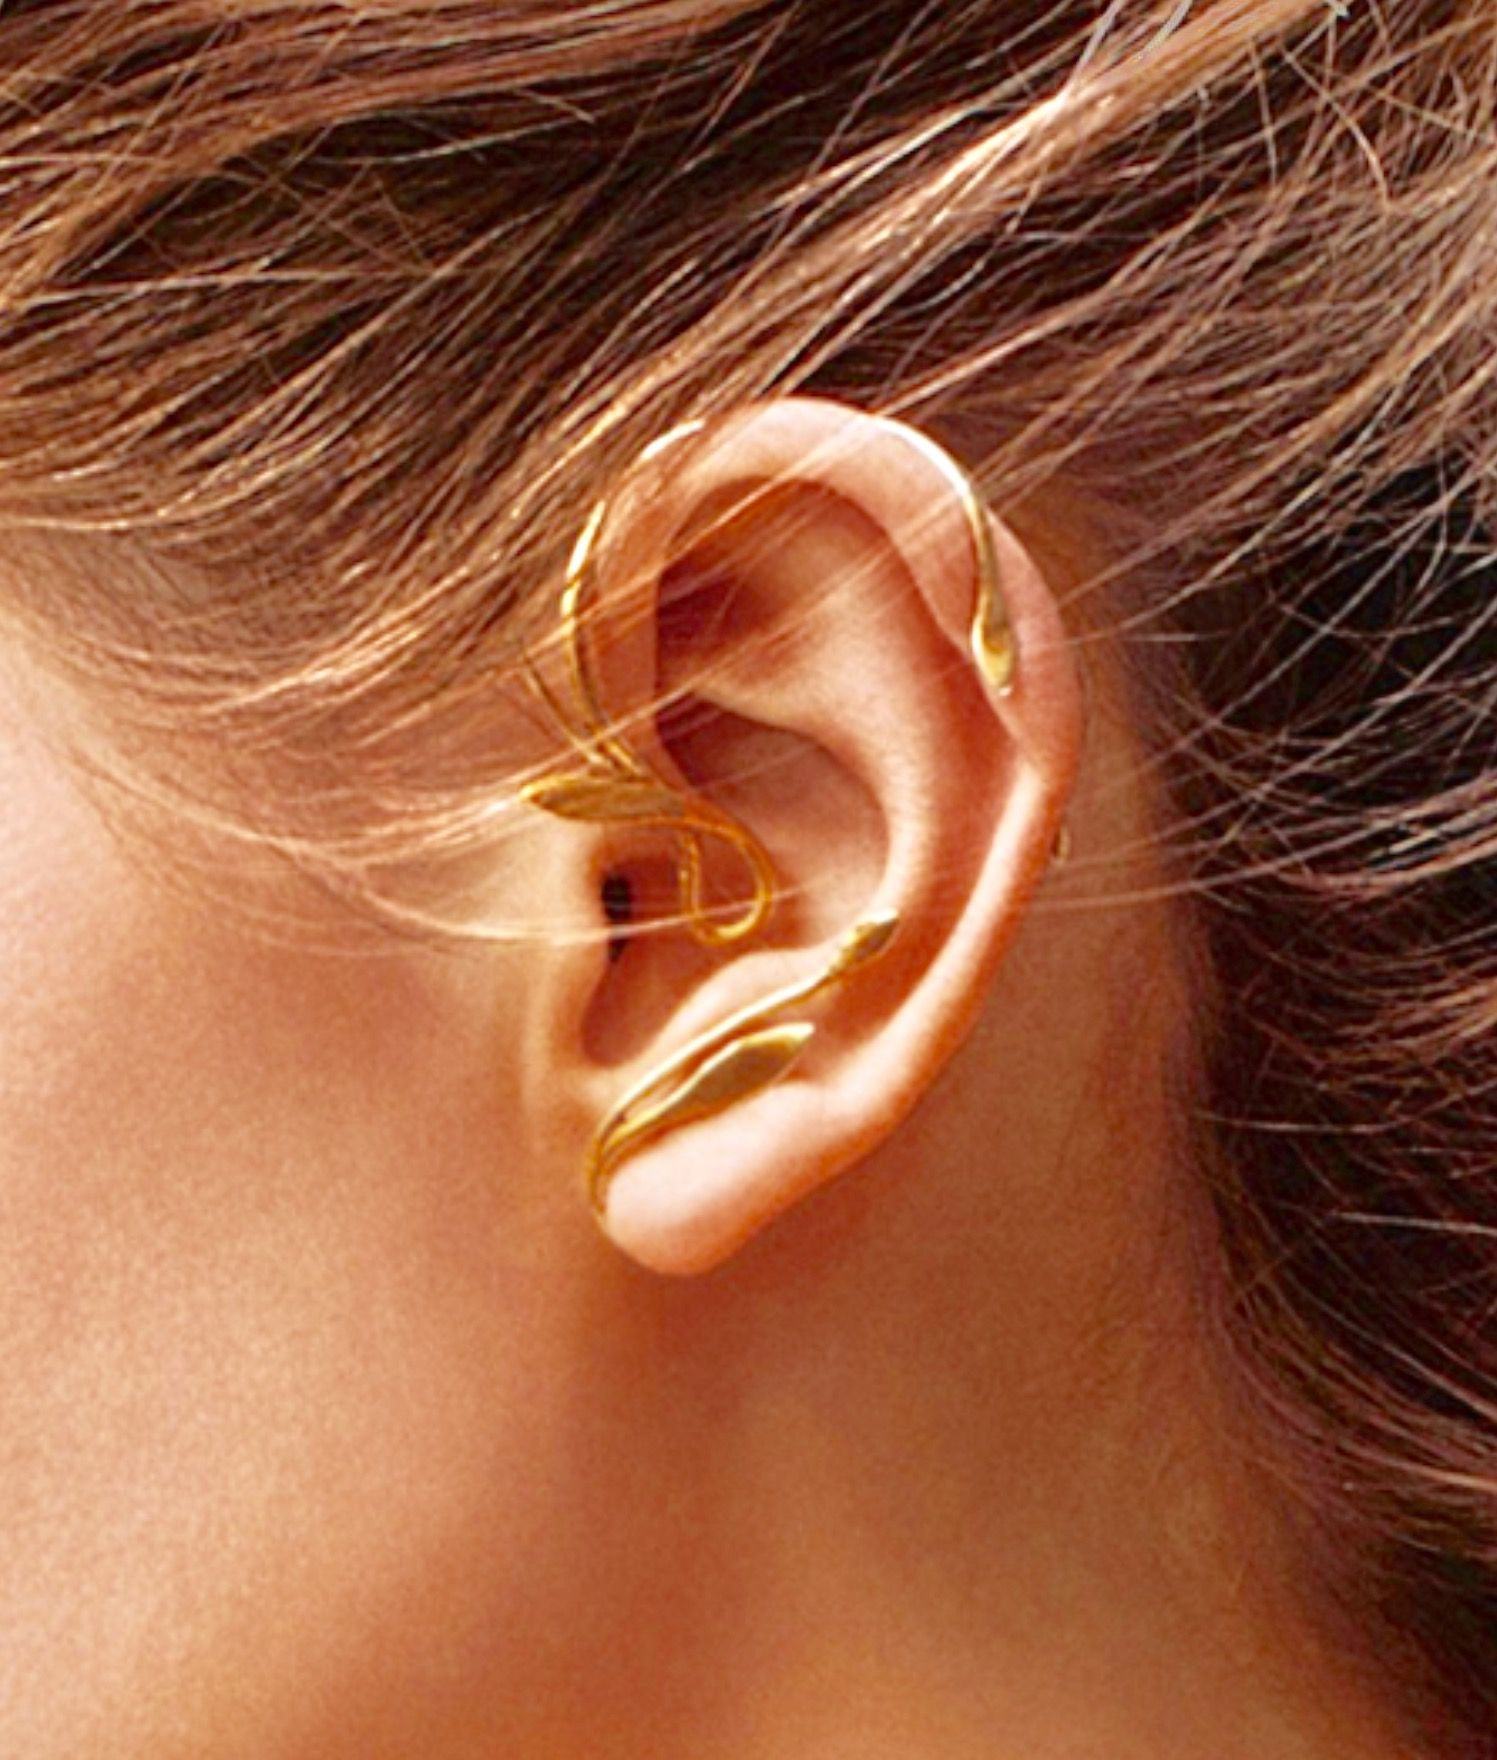 f7207f025 Belle earcuff - Beauty and the Beast Belles Ear Cuff, Ear Jewelry, Jewelry  Art